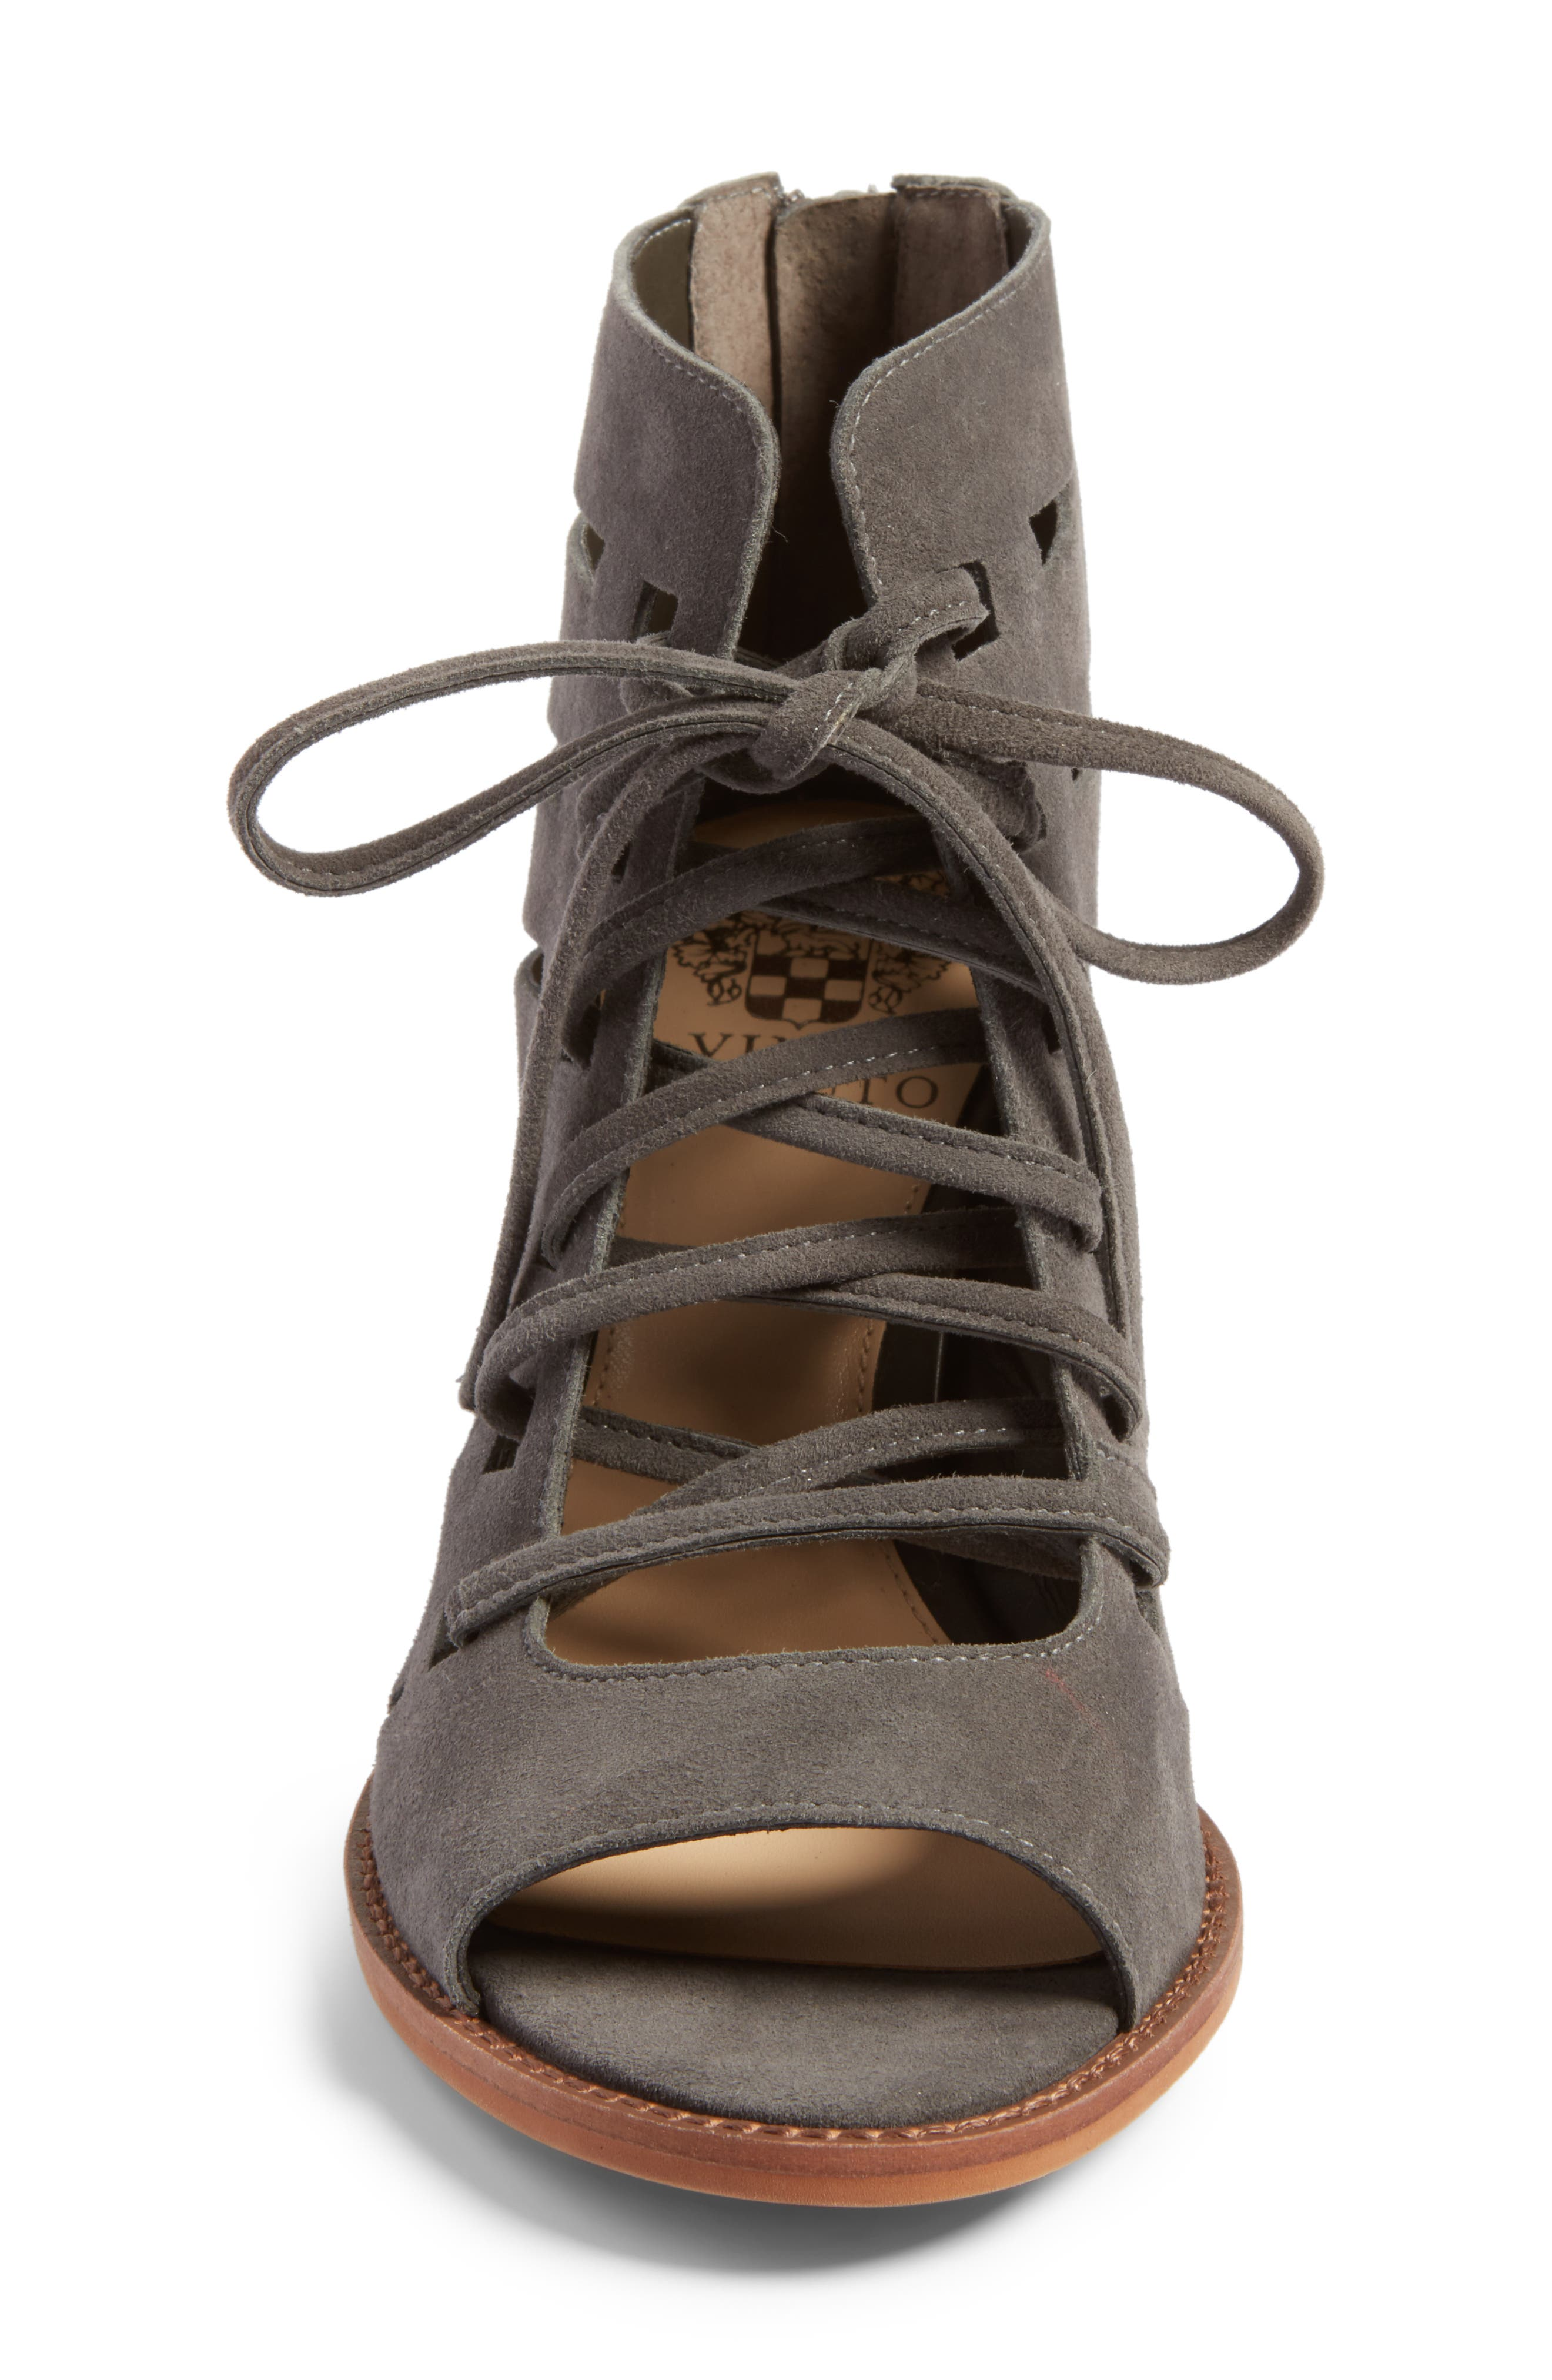 Tressa Perforated Lace-Up Sandal,                             Alternate thumbnail 4, color,                             Greystone Suede